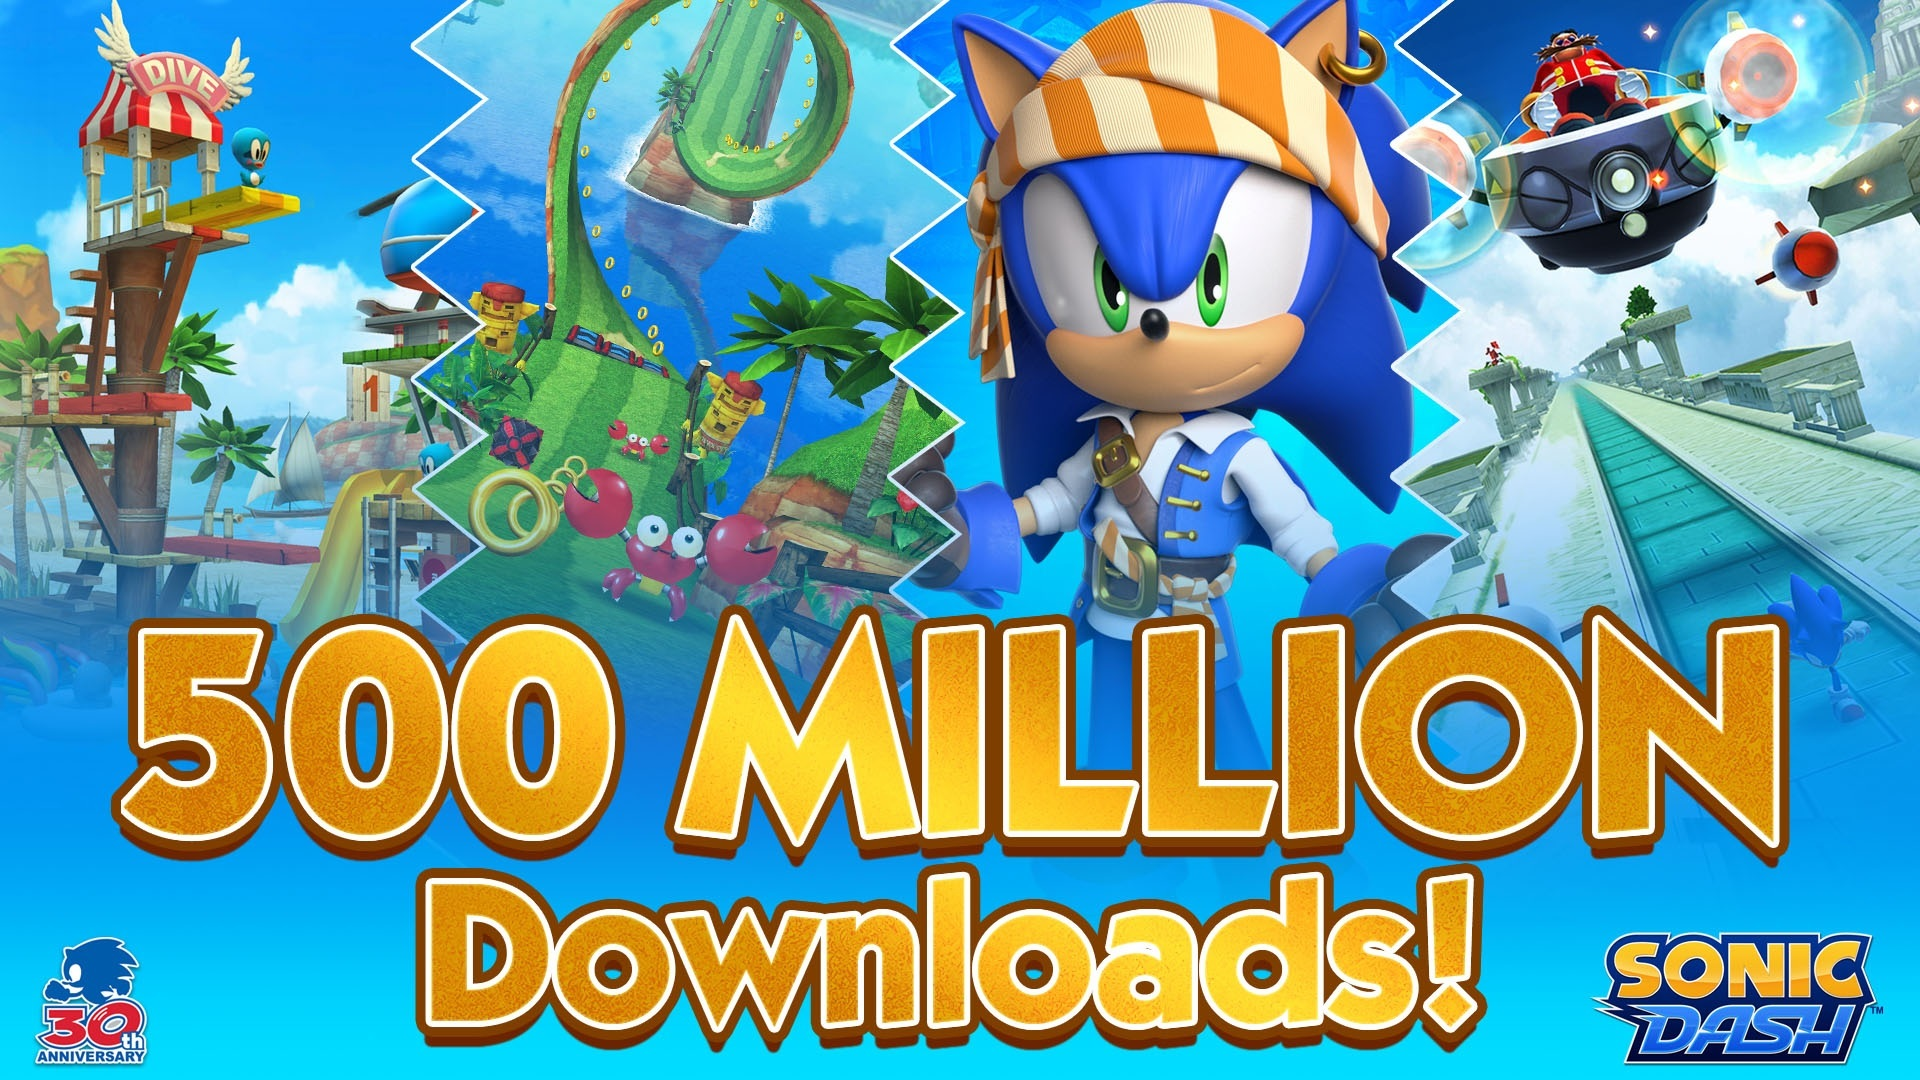 Sonic Dash surpasses 500 million downloads worldwide across iOS and Android - Final Weapon